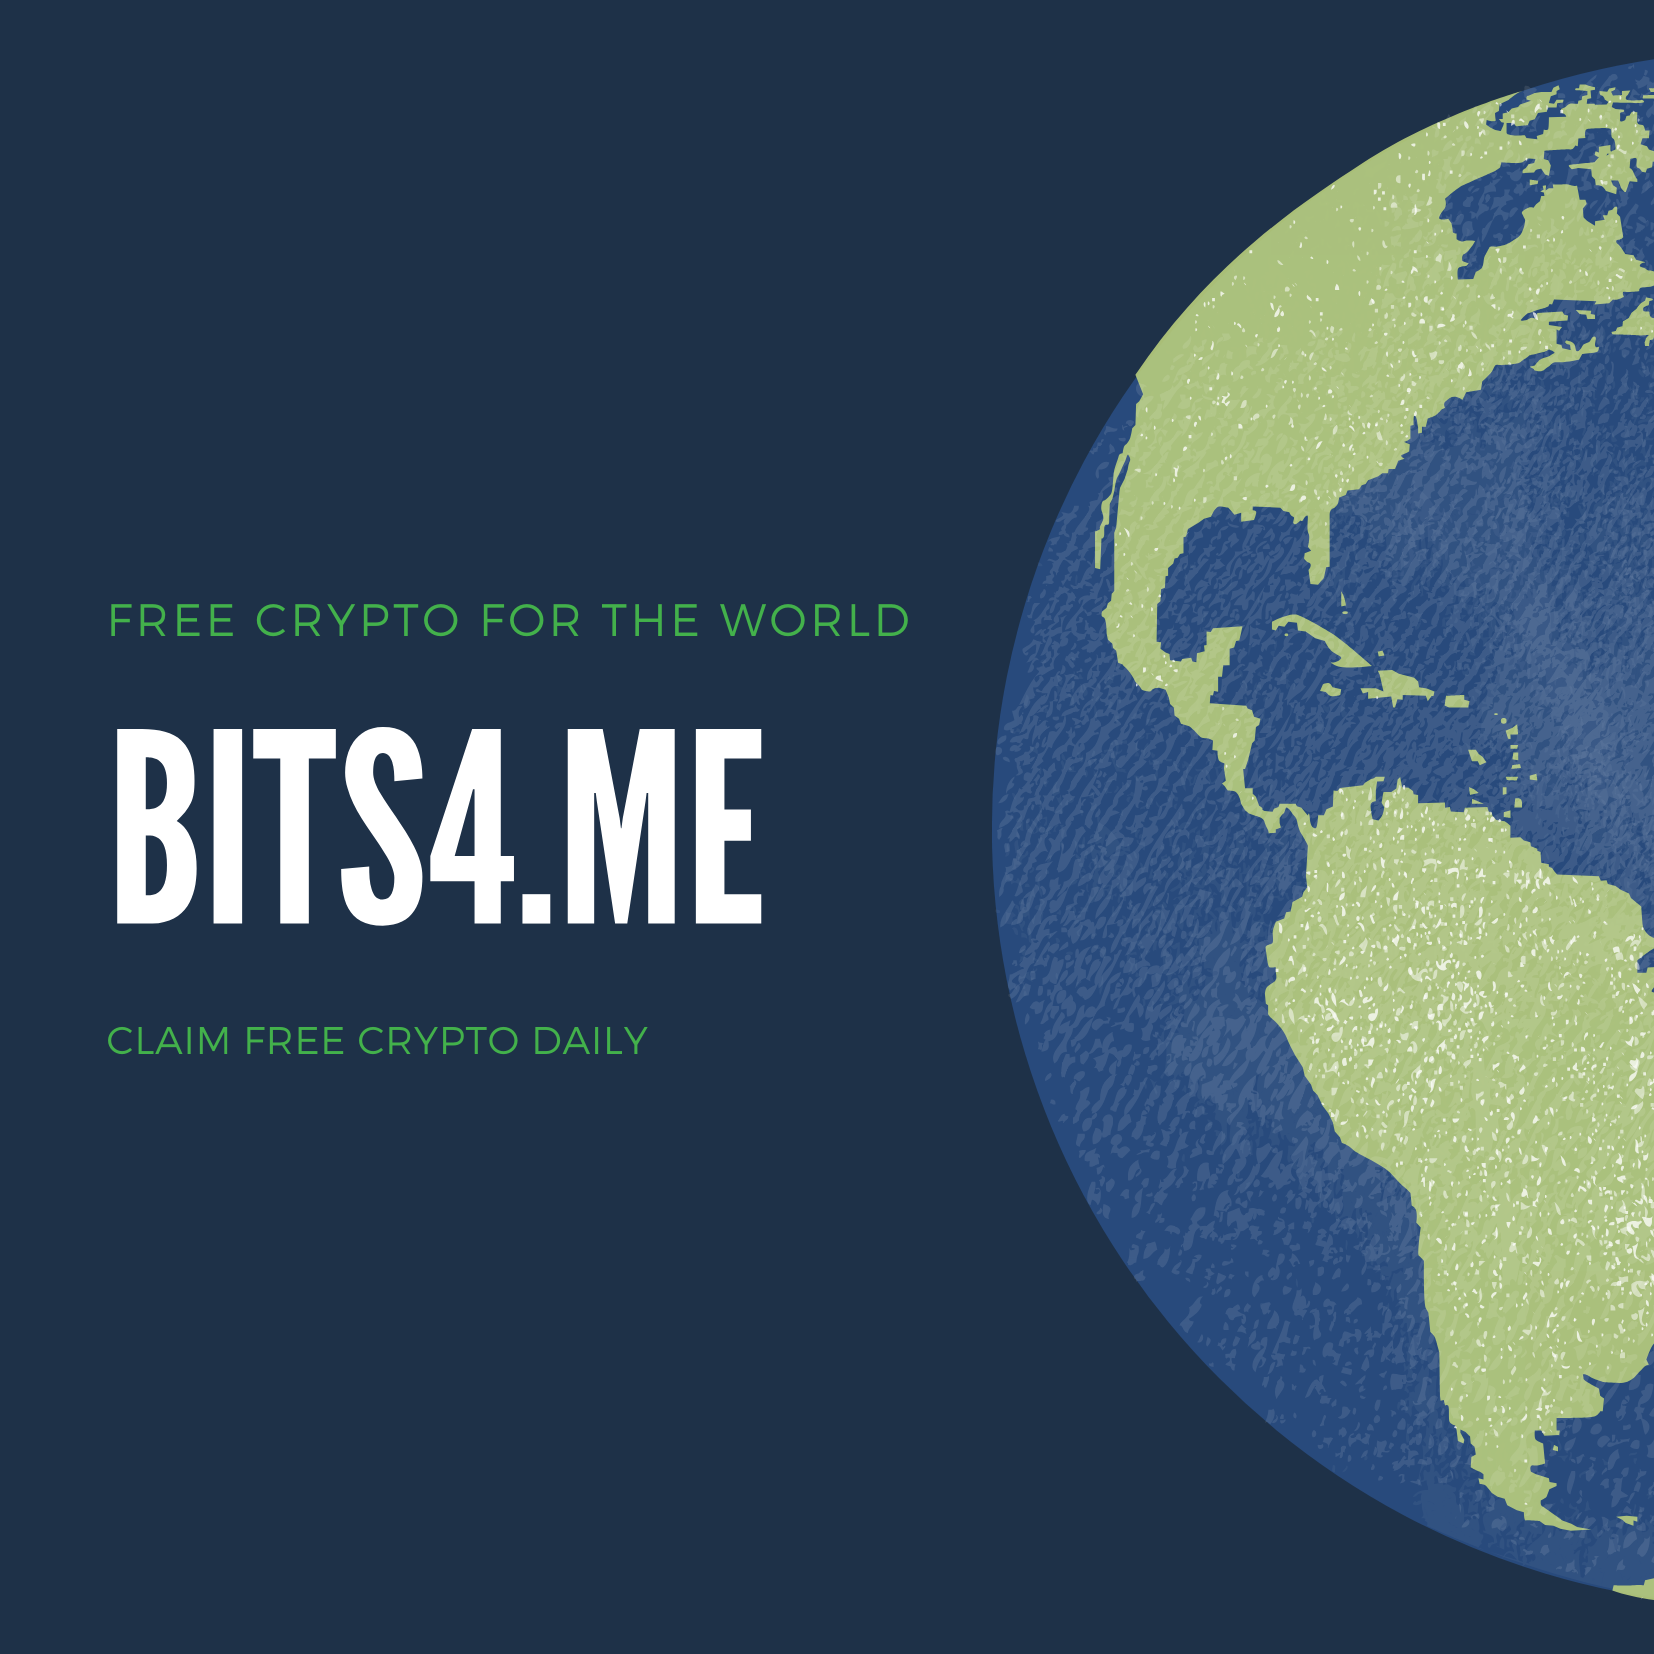 how to claim free cryptocurrency